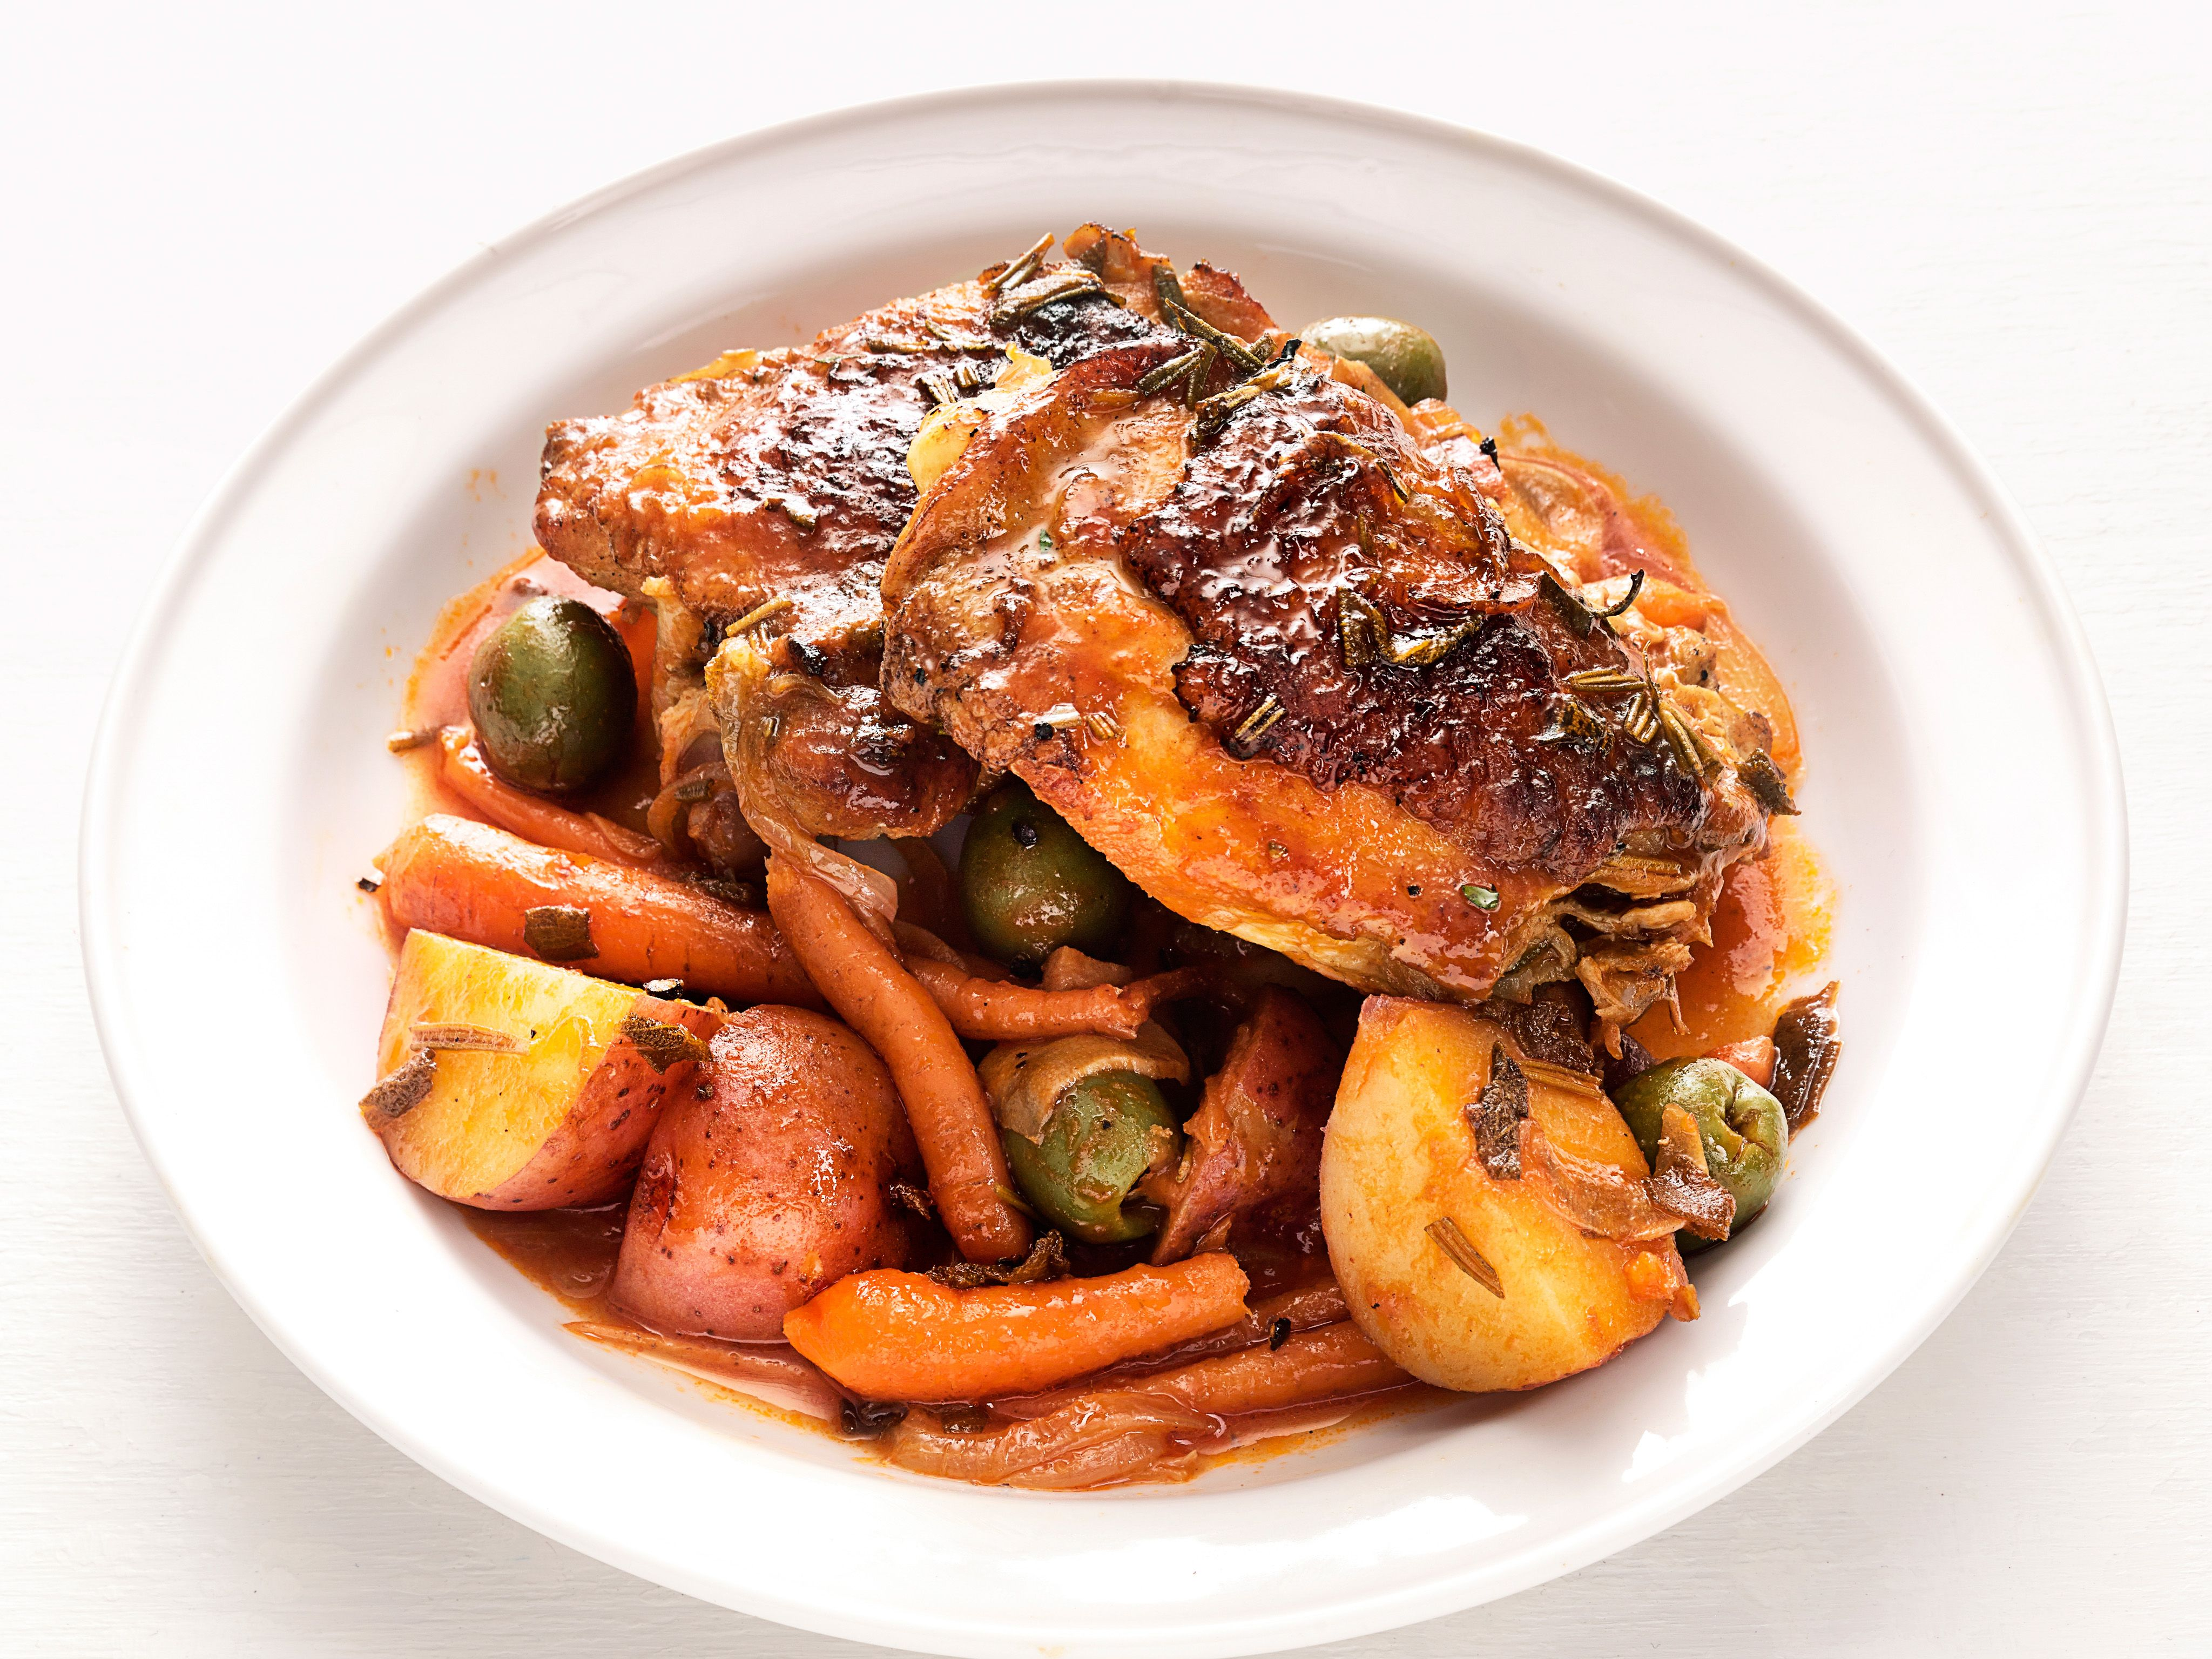 Braised chicken thighs with olives and potatoes receta forumfinder Images